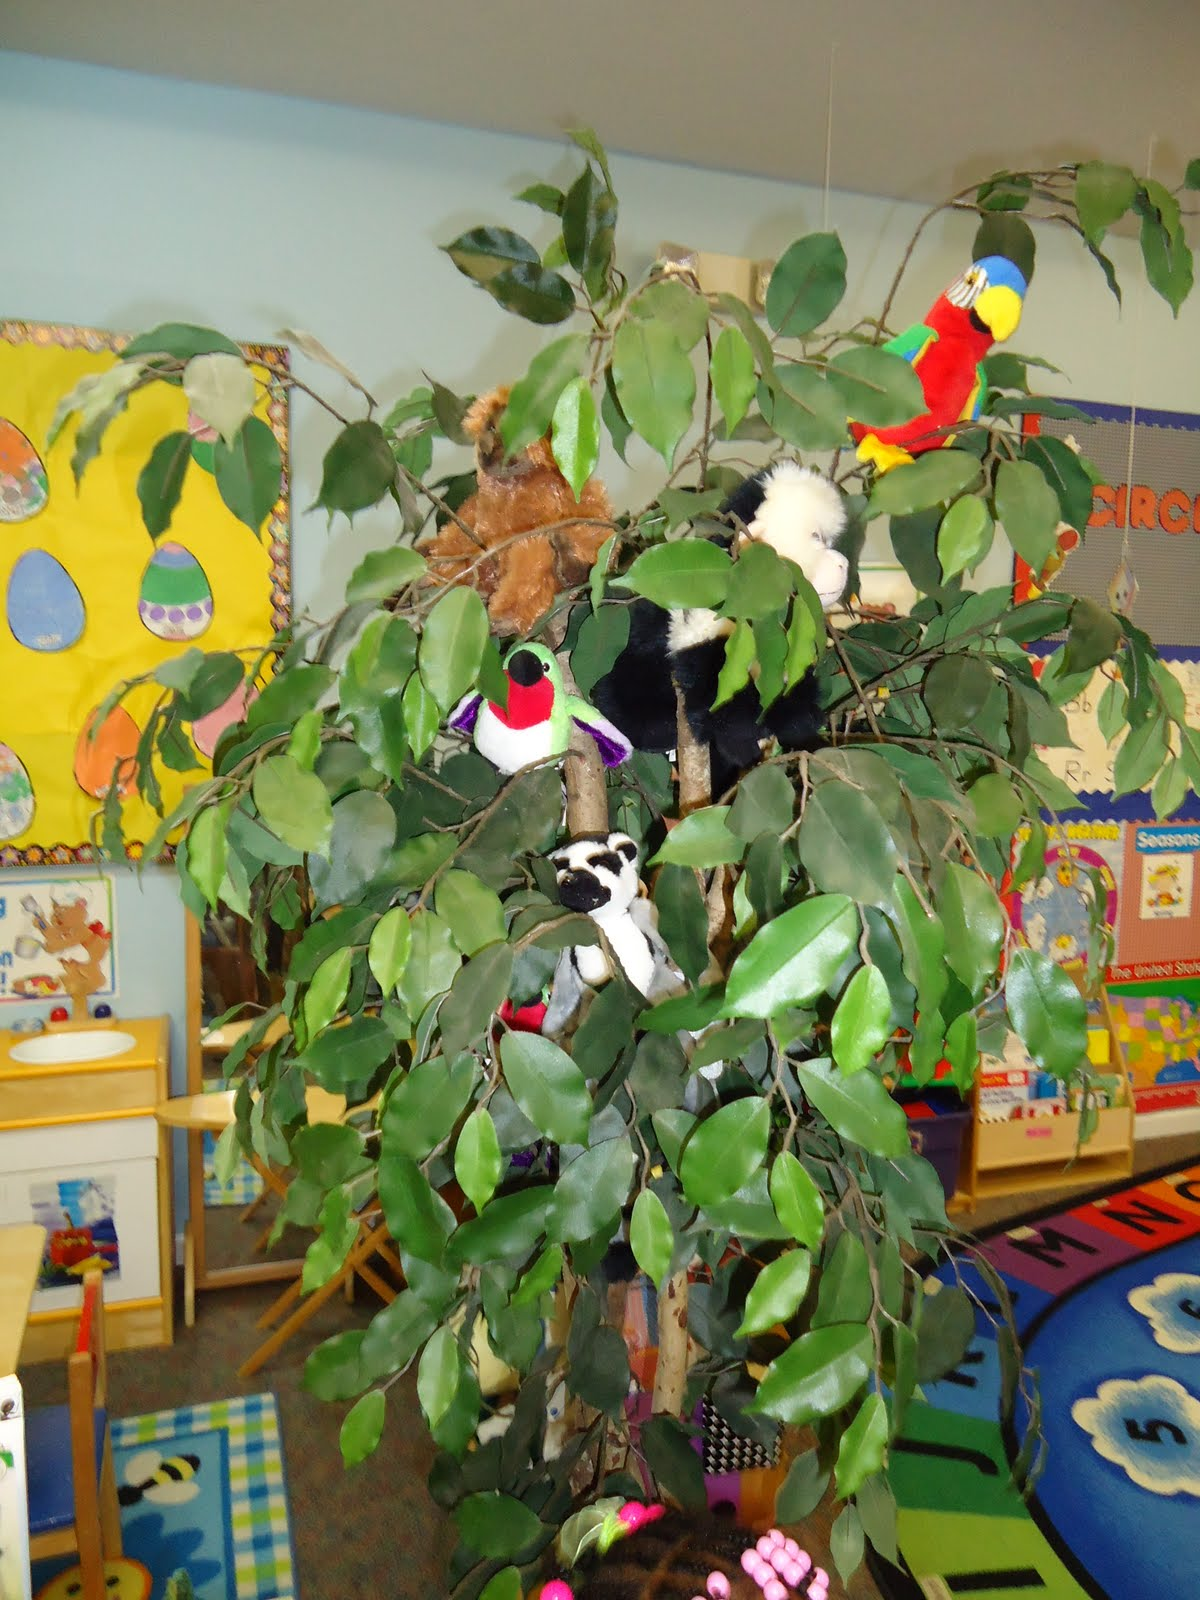 Rainforest Theme Classroom Ideas ~ Little illuminations creating a rainforest in the classroom